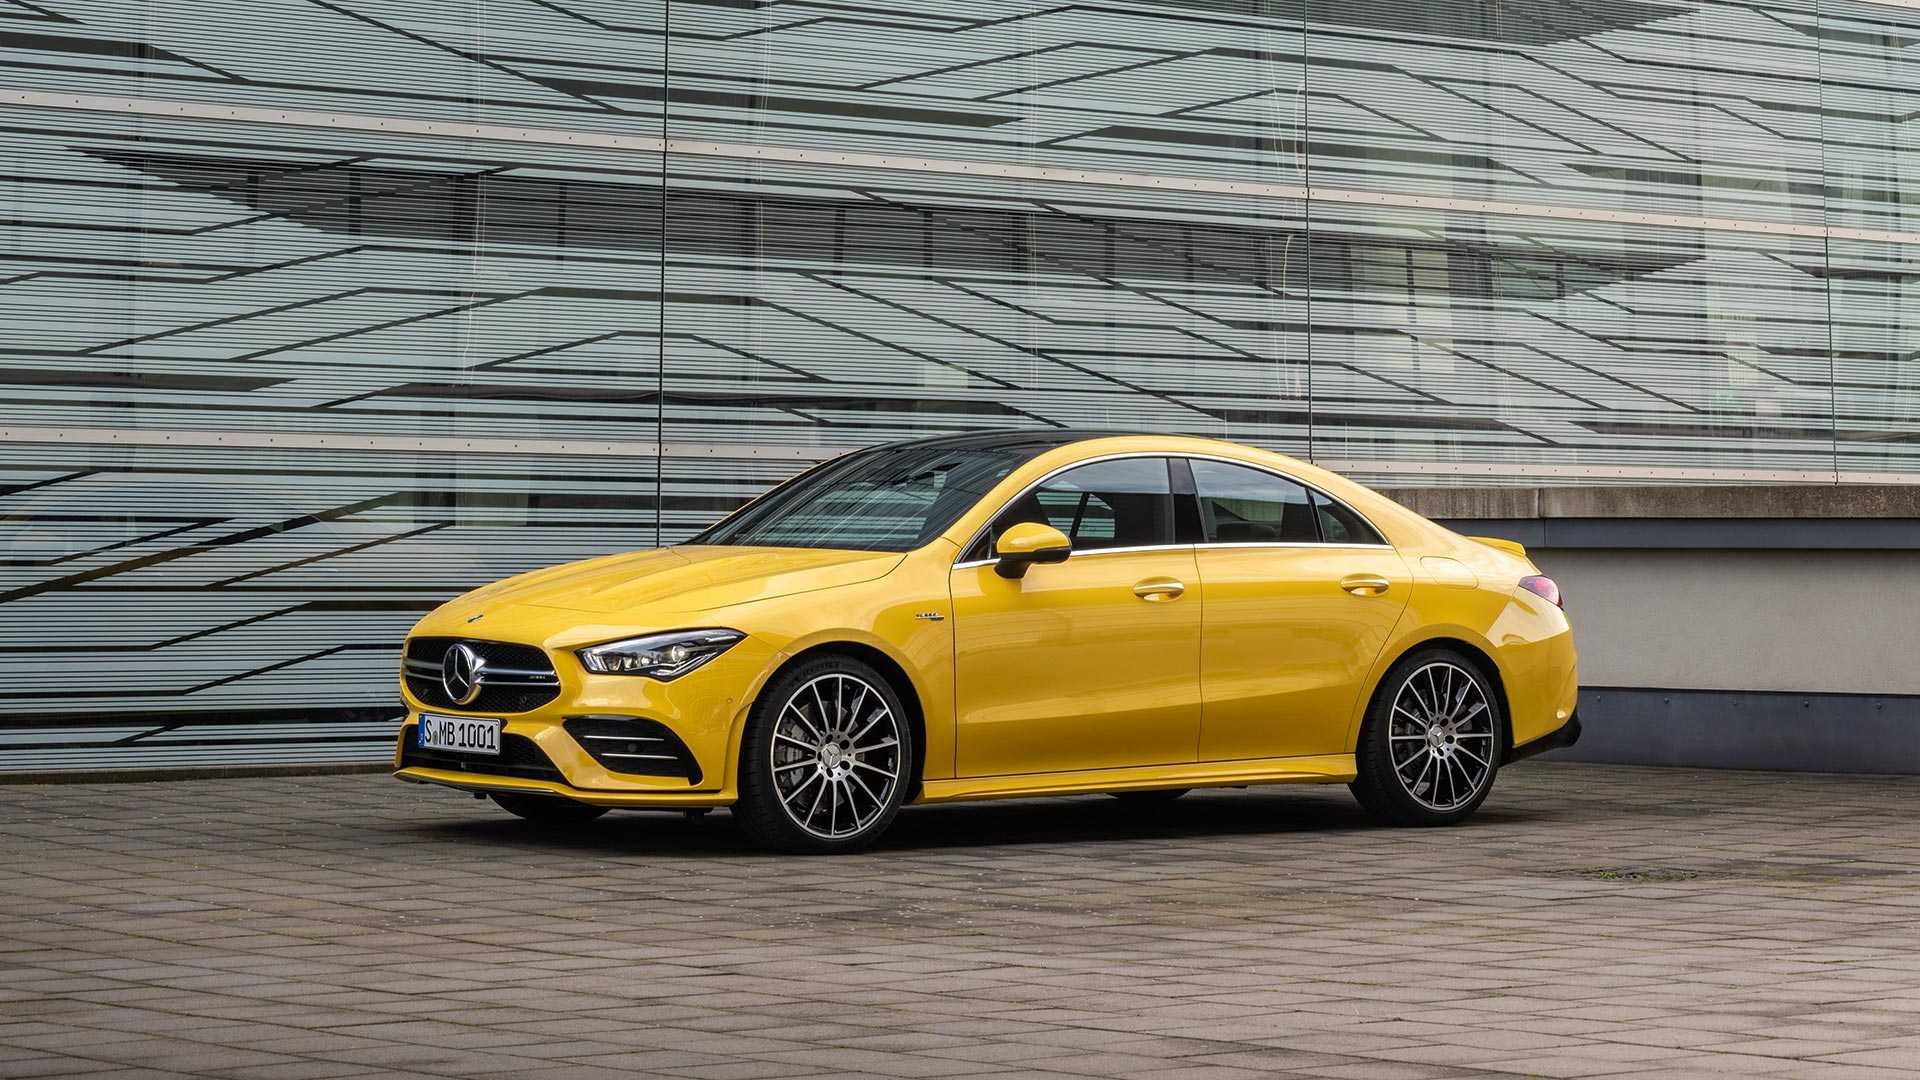 2020 Mercedes-AMG CLA 35 4MATIC (Color: Sun Yellow) Front Three-Quarter Wallpapers (14)